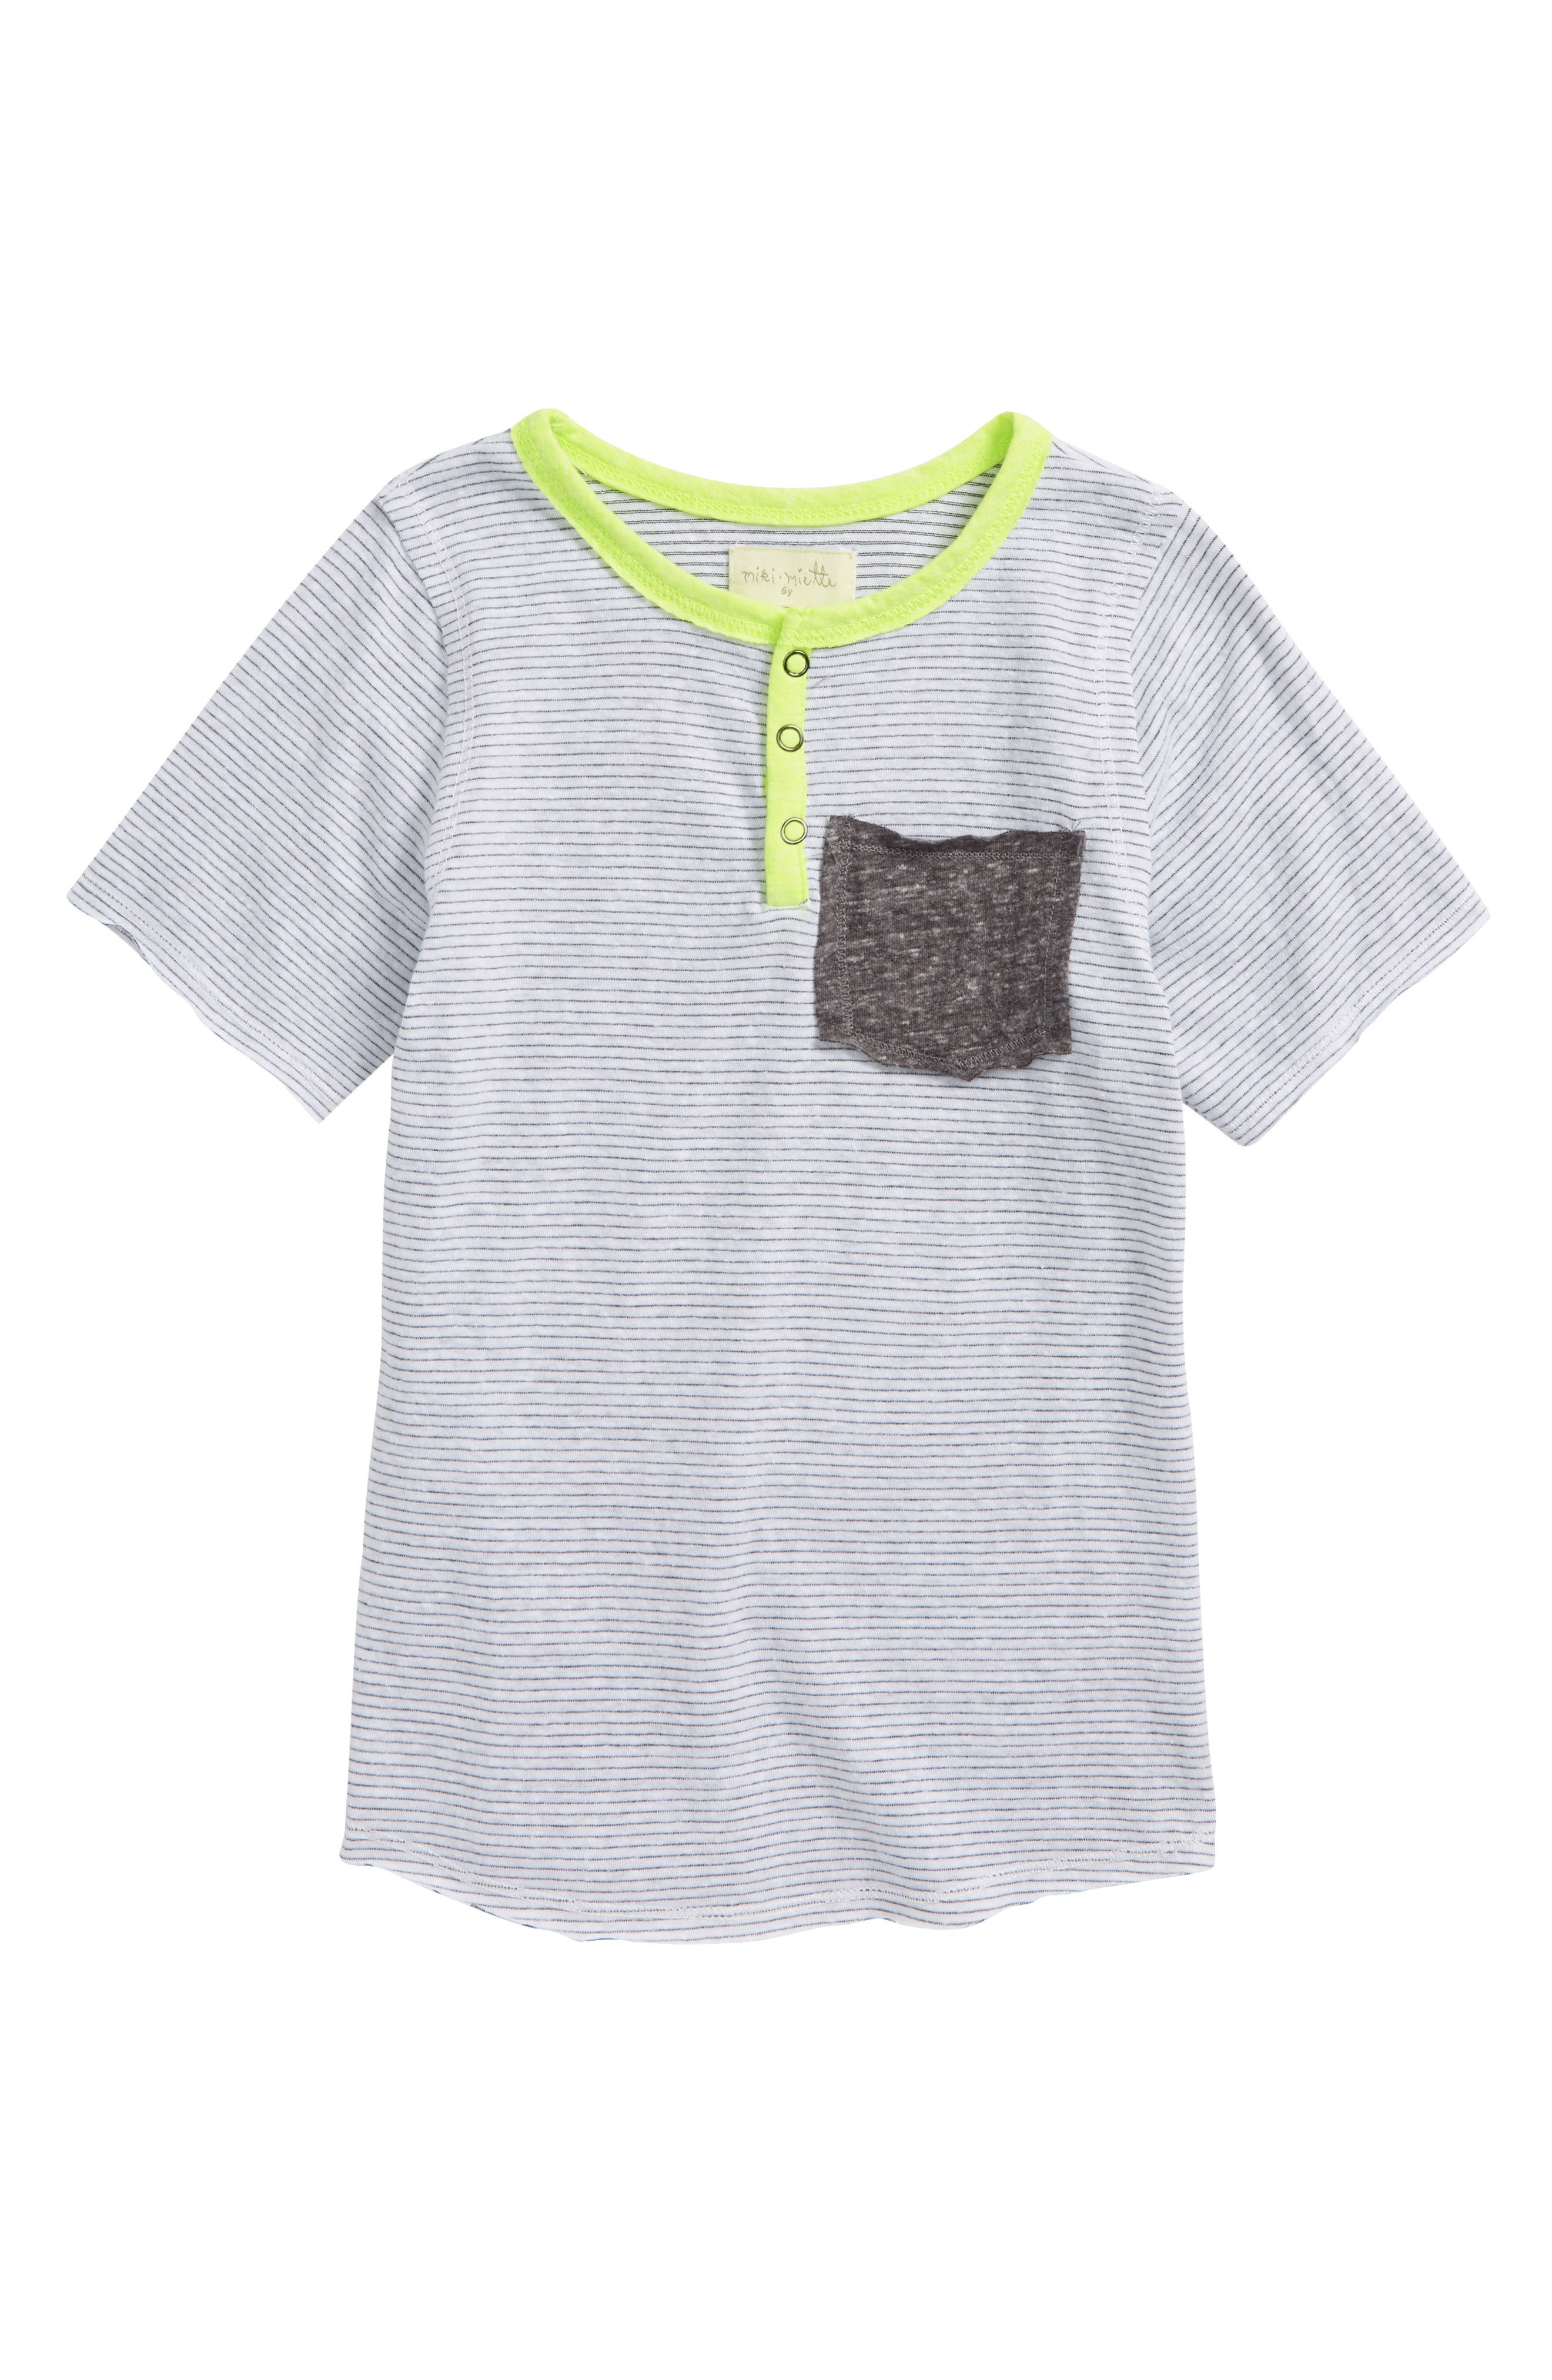 Jax Pocket T-Shirt,                         Main,                         color, Sol